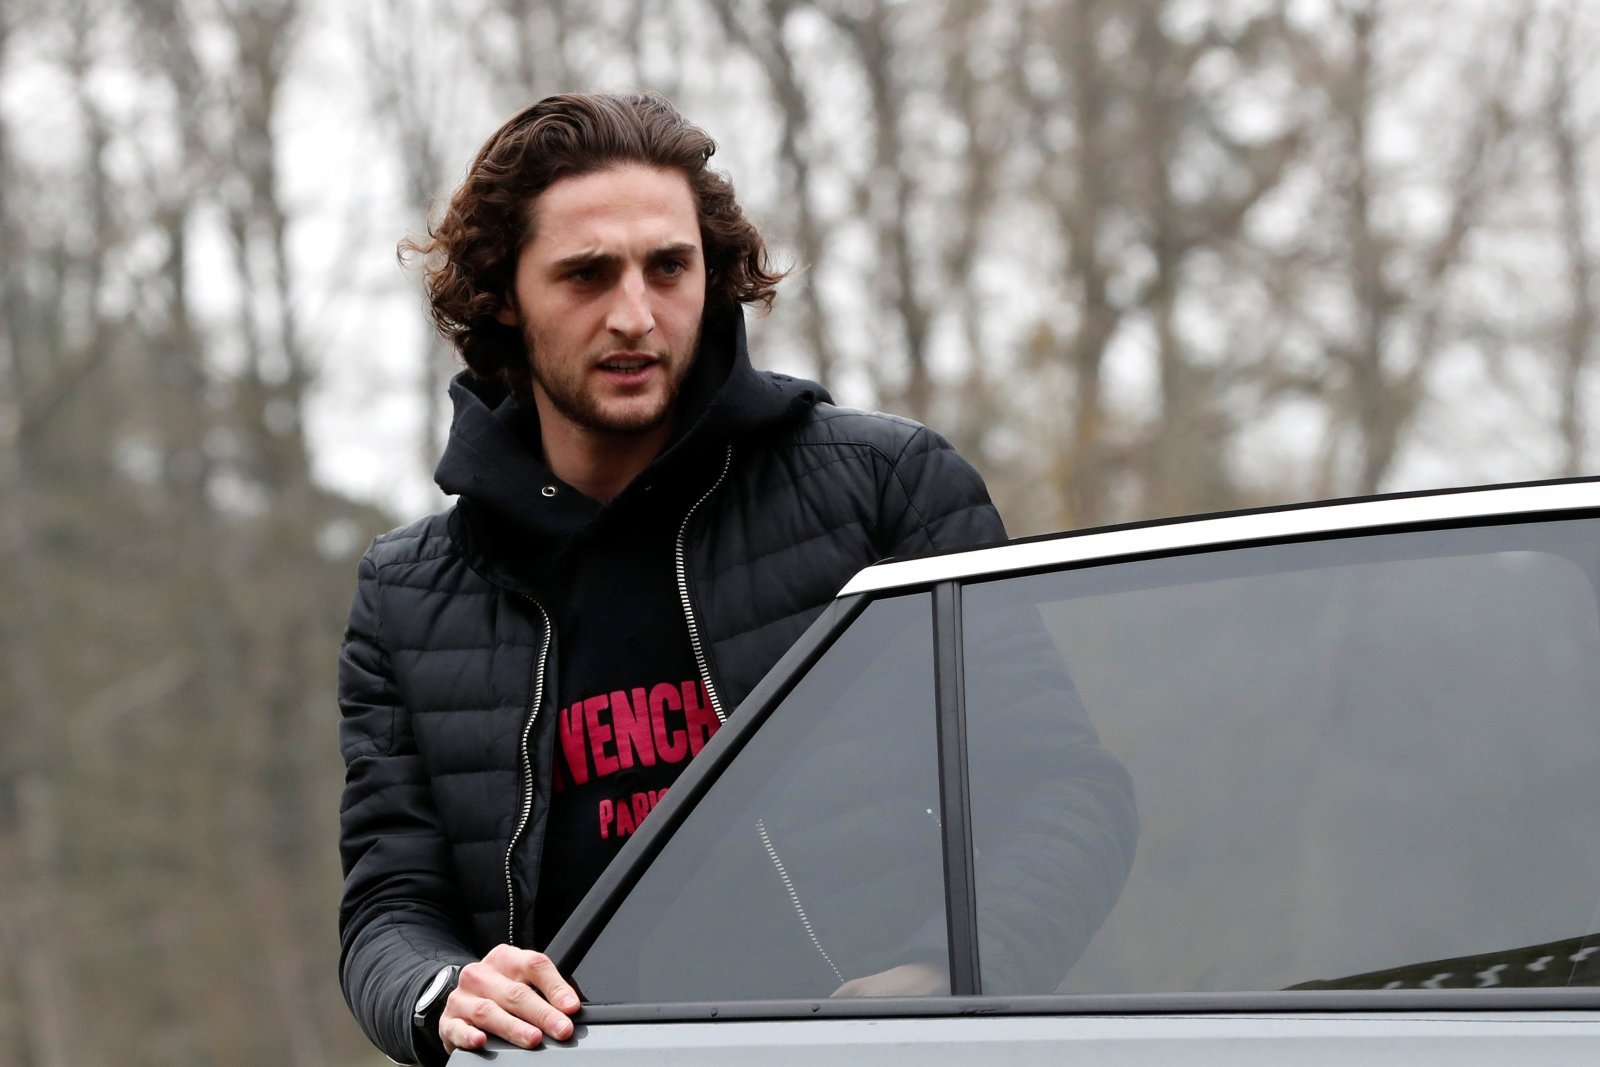 A standout signing like Rabiot would excite Tottenham fans